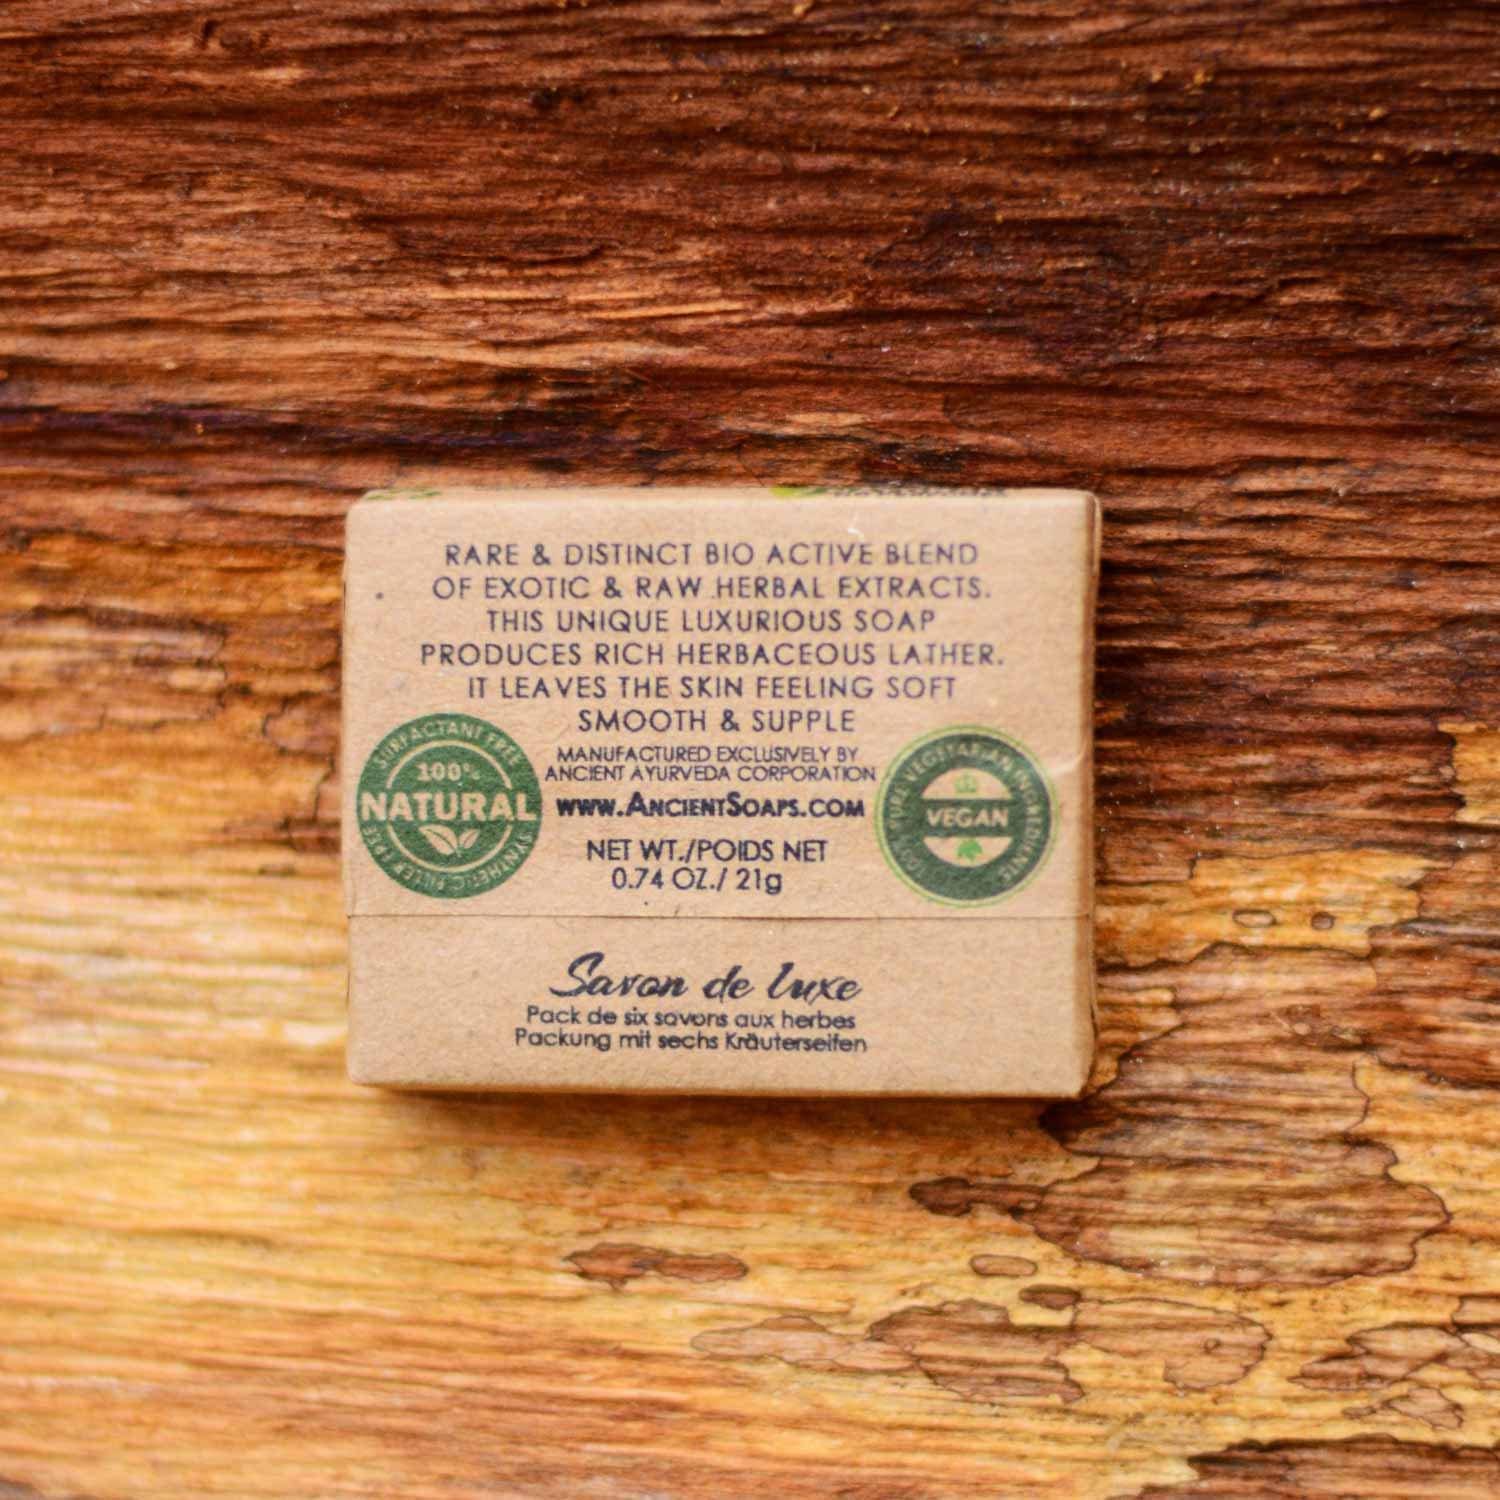 Customized Soaps for yoga or any kind of business